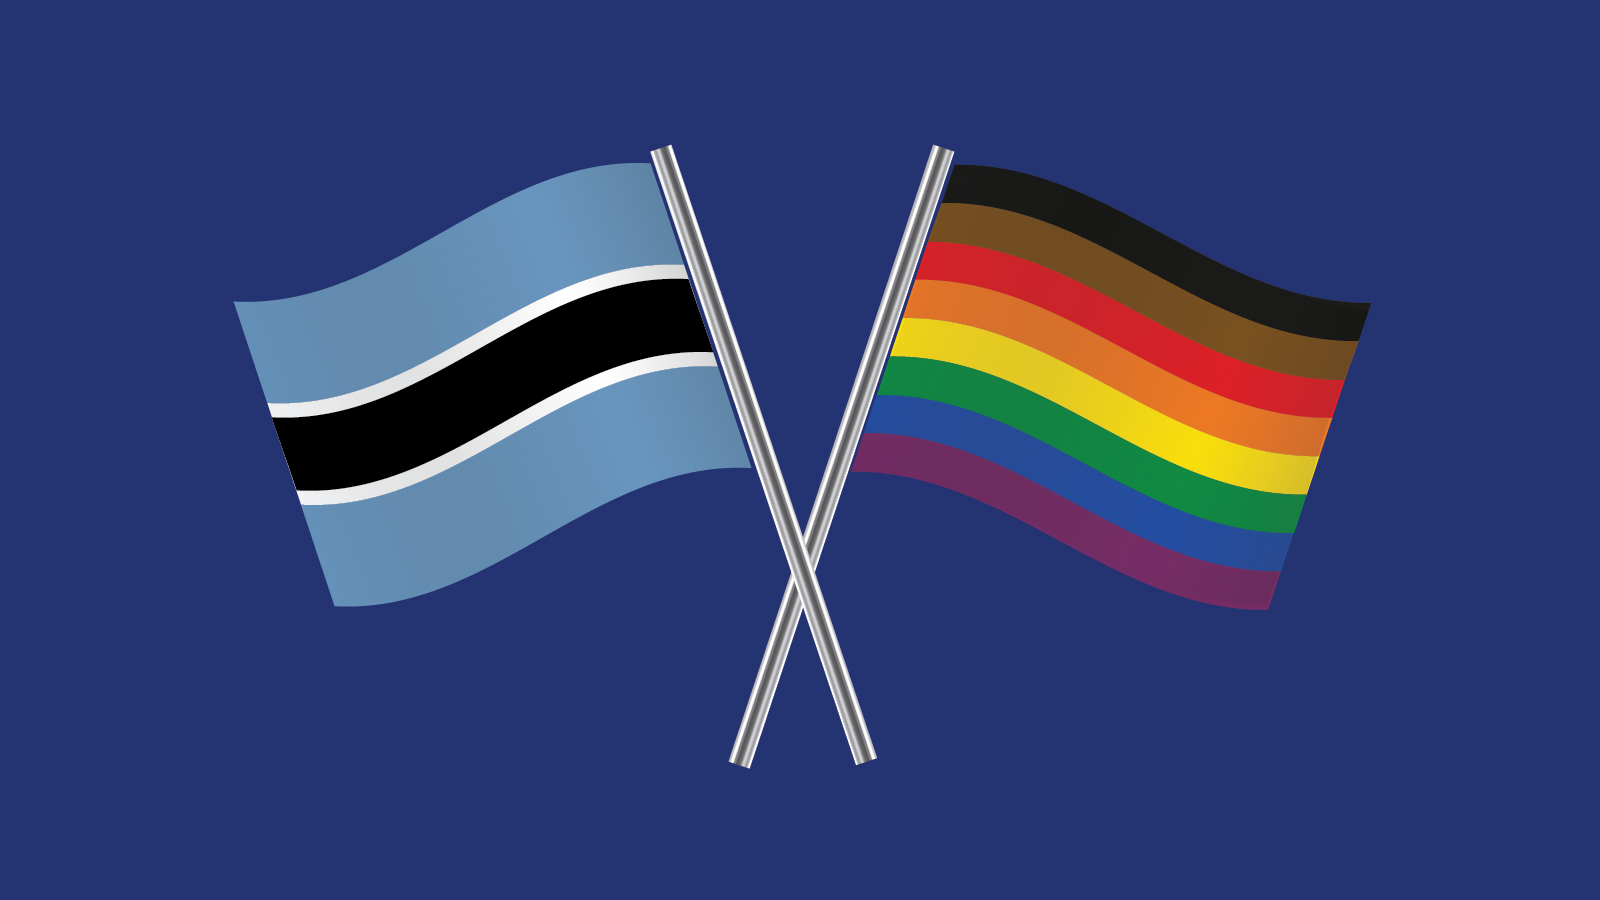 Historic! Botswana High Court Overturns Colonial-Era Law Criminalizing Same-Sex Relations